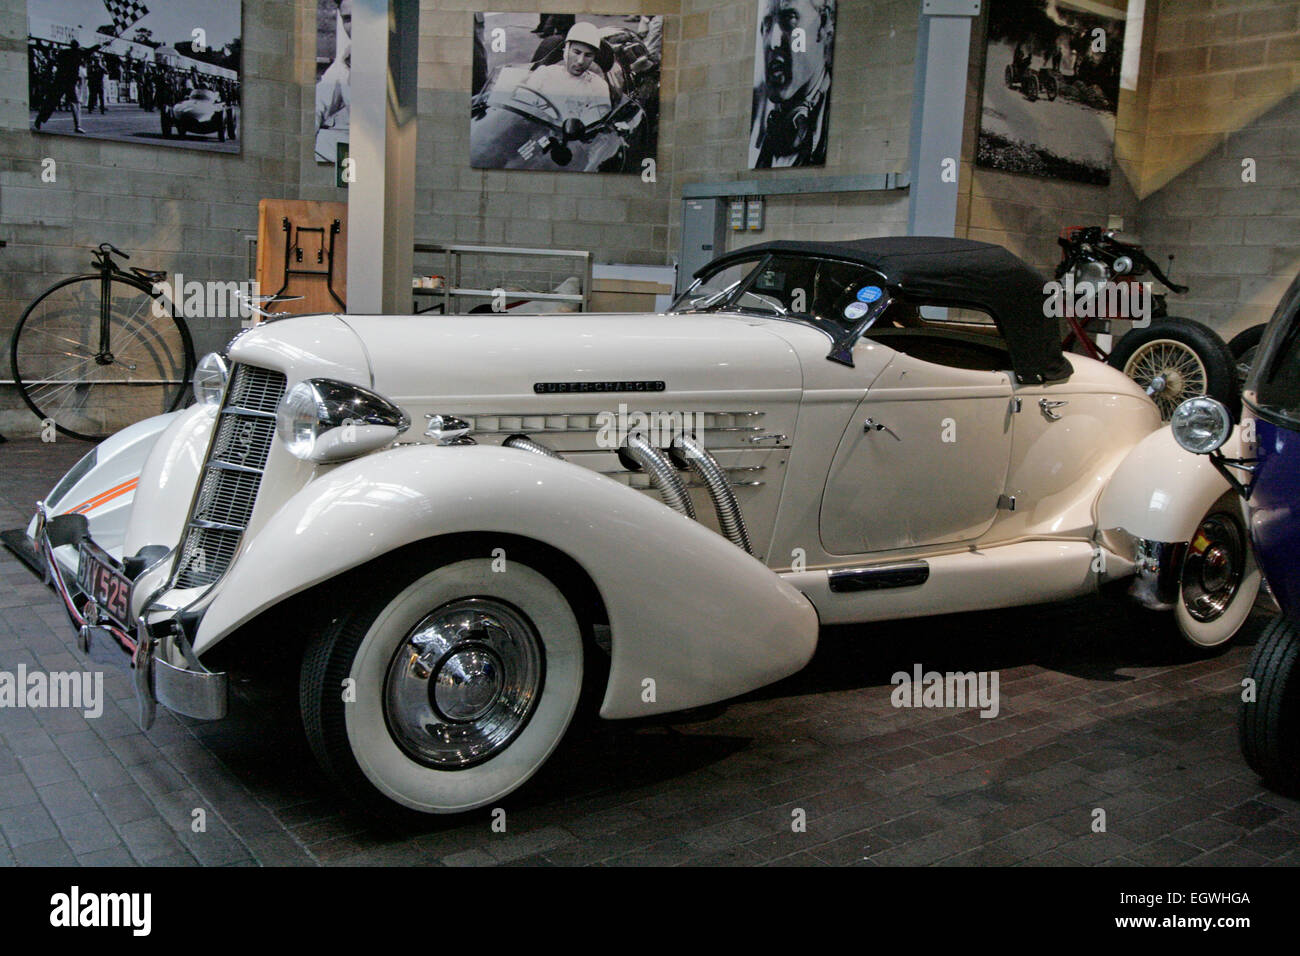 A 1935 Auburn 851 at the National Motor Museum, Beaulieu, England - Stock Image